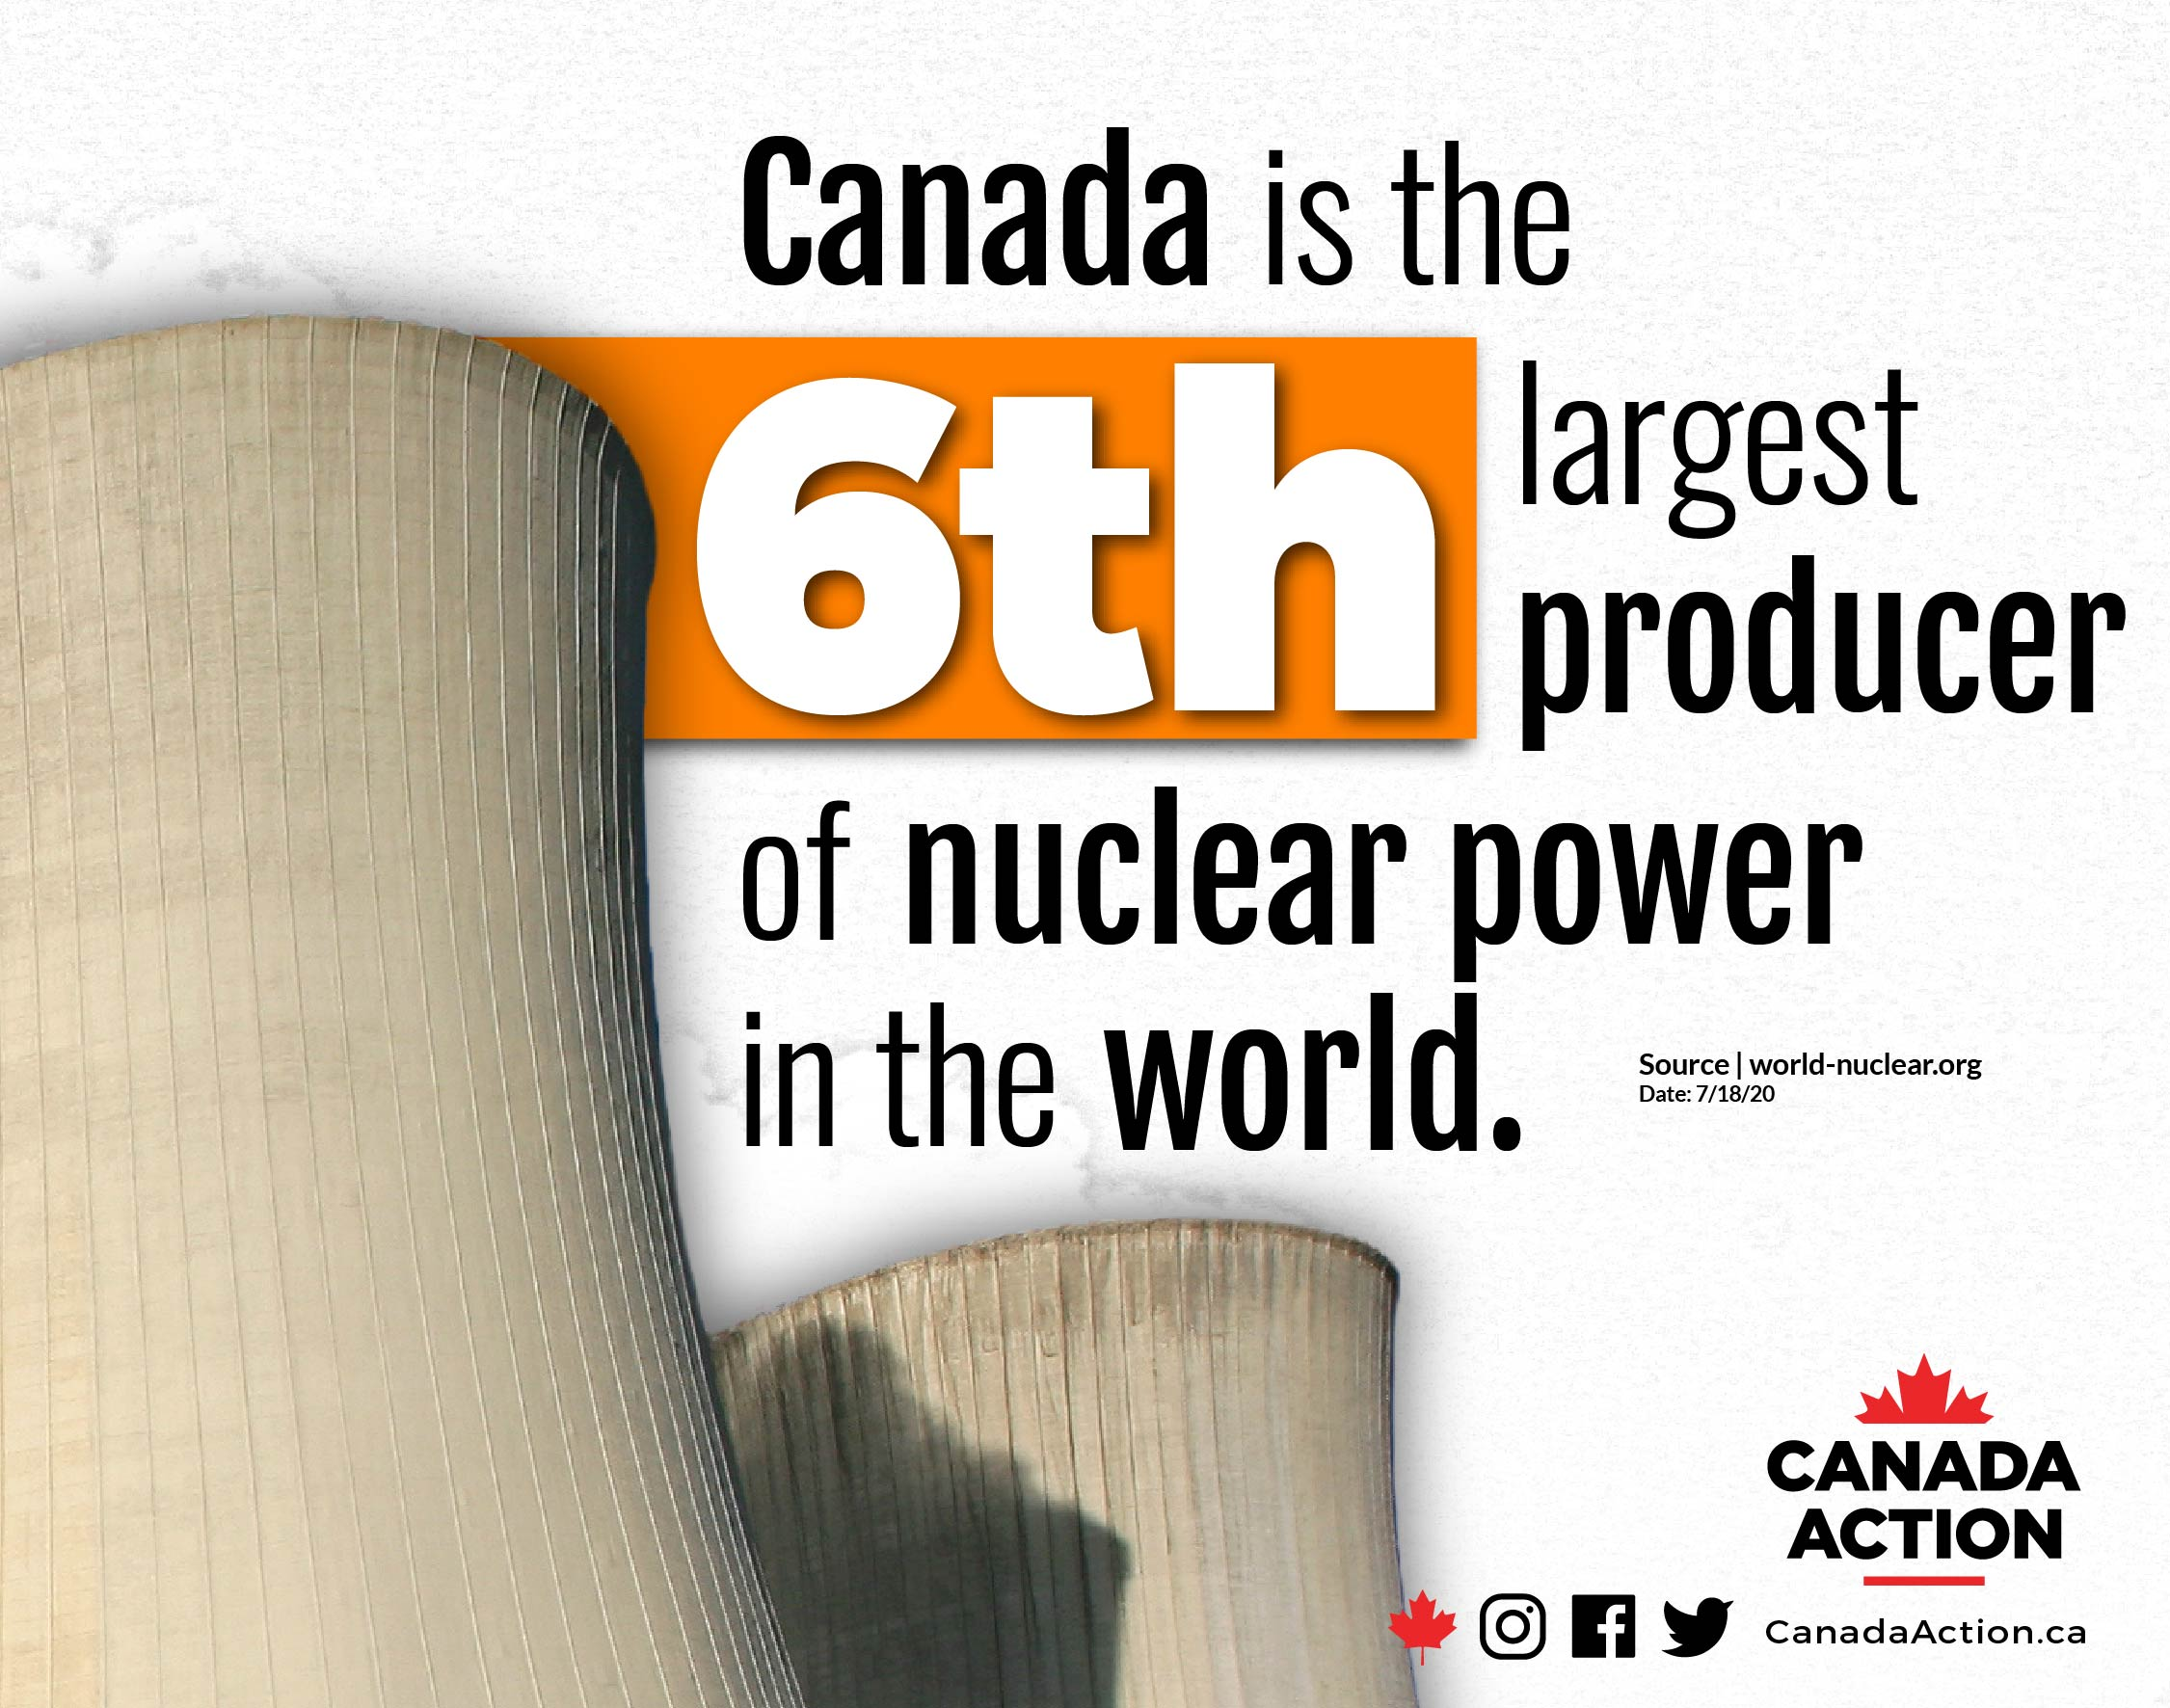 Canada is the 6th Largest Producer of Nuclear Energy in the World